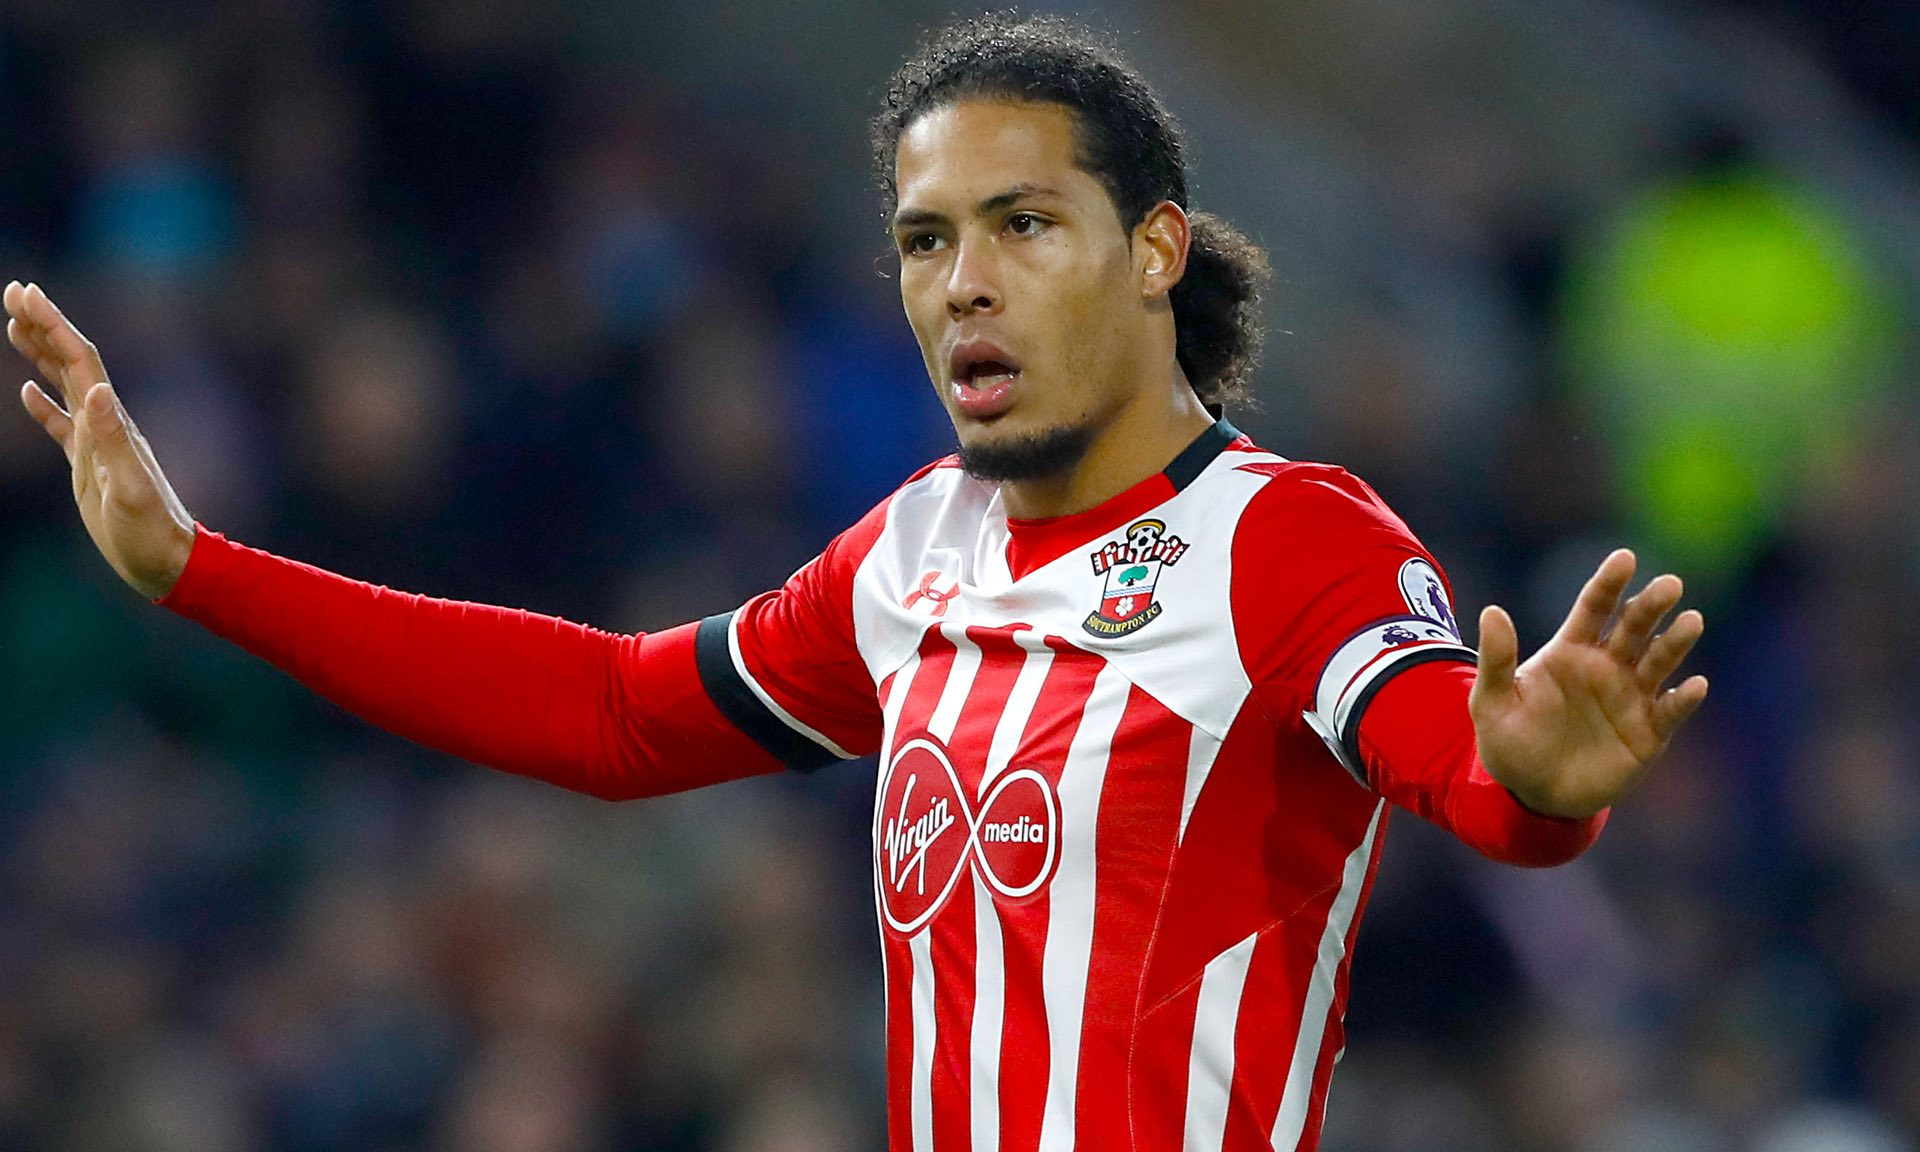 Liverpool's approach to Virgil Van Dijk creates controversy